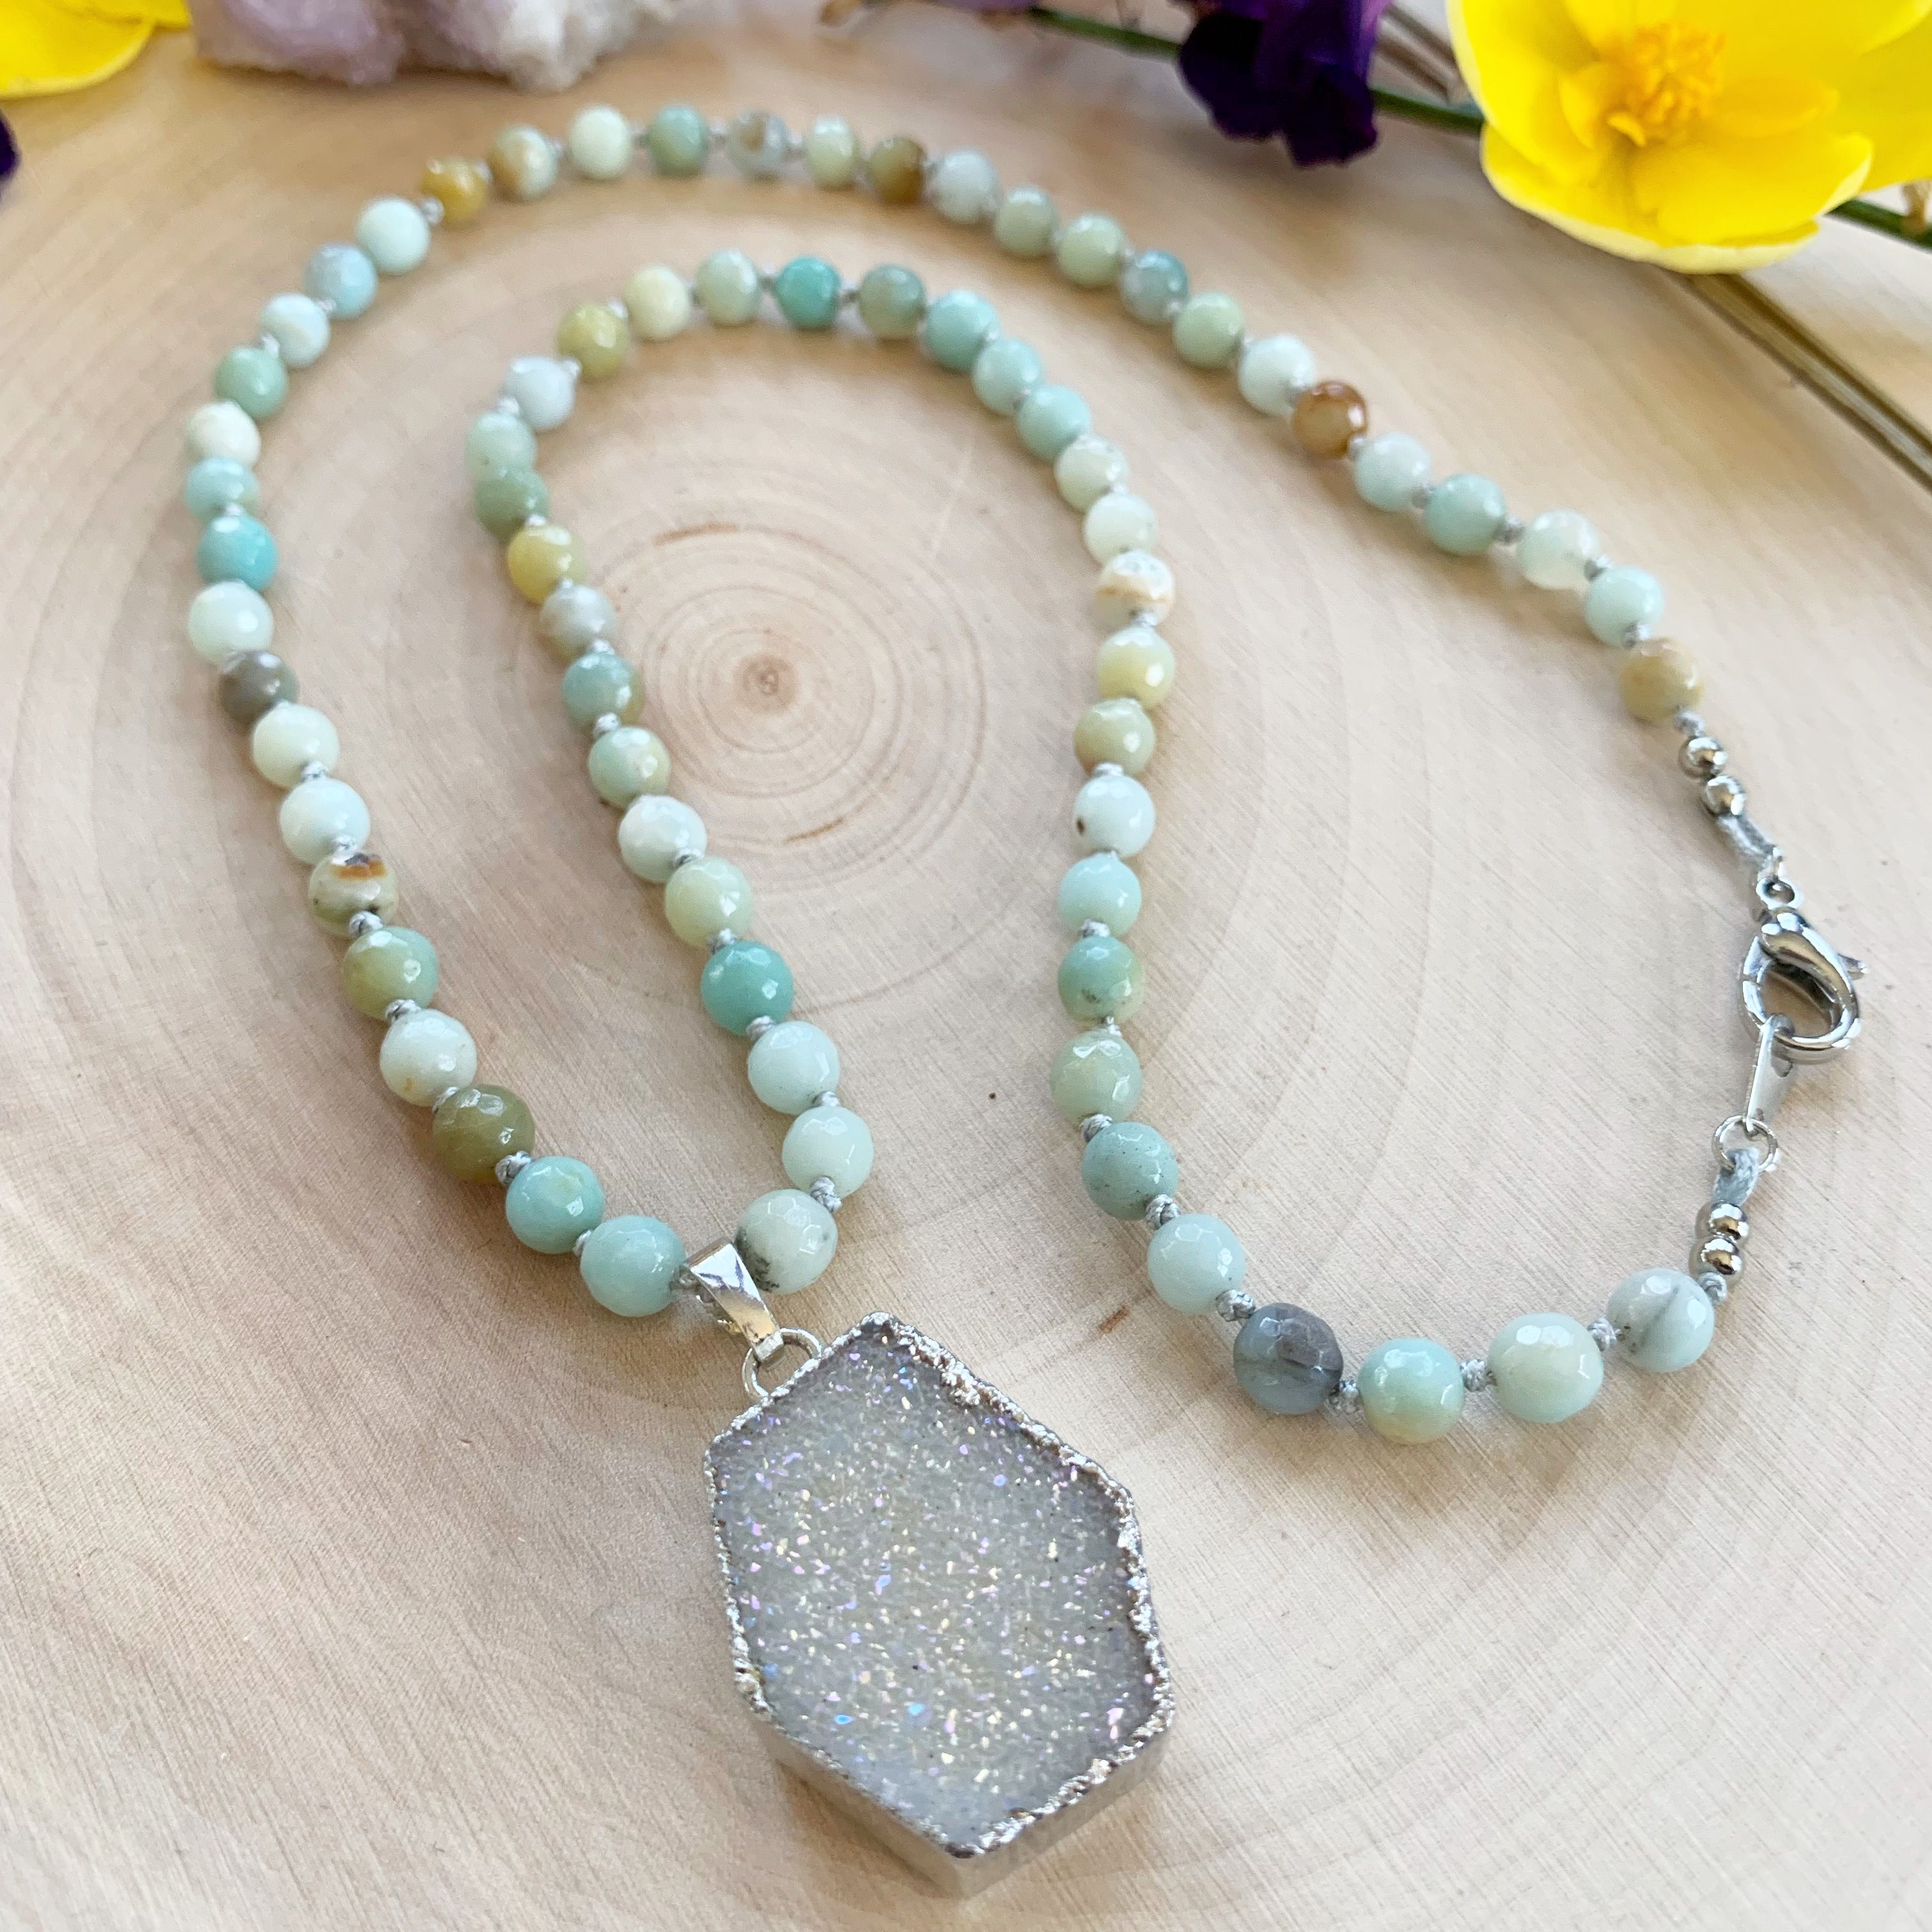 Sparkling Druzy Pendant With Amazonite Gemstones Necklace Raw